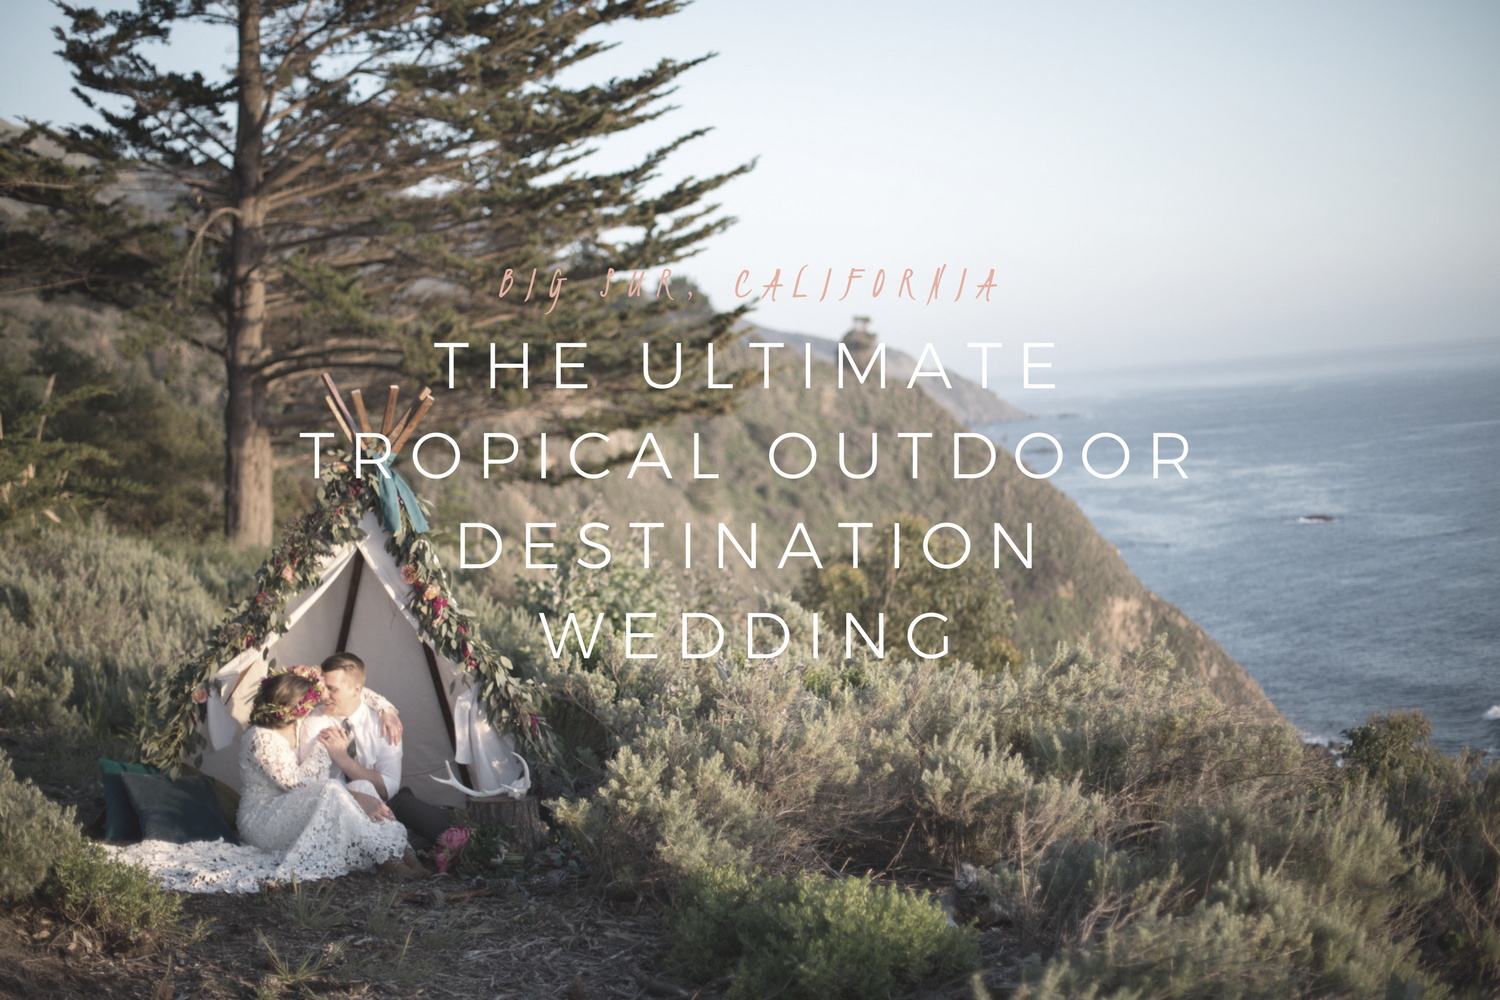 The Ultimate Tropical Outdoor Destination Wedding | Big Sur, California